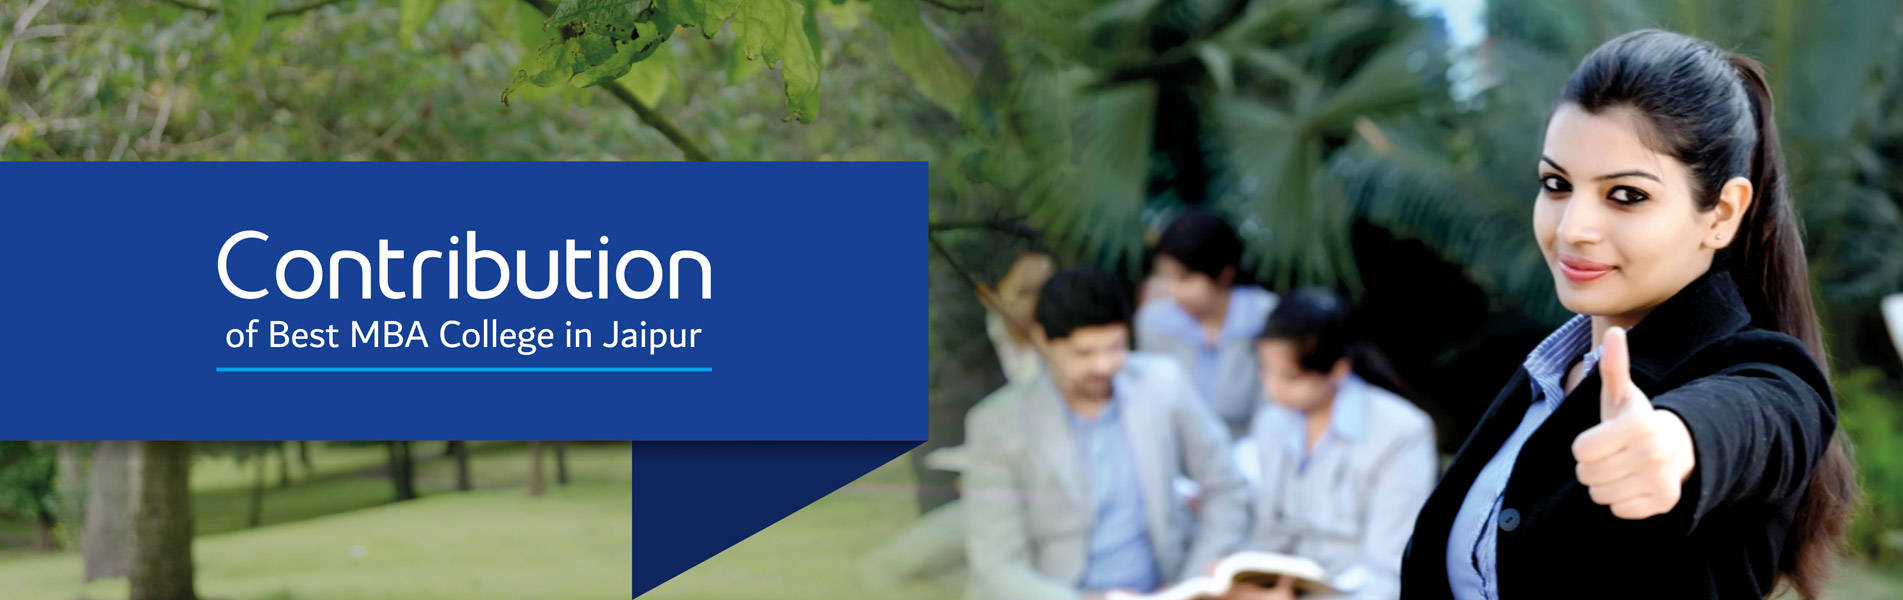 Contribution-of-Best-MBA-College-in-Jaipur